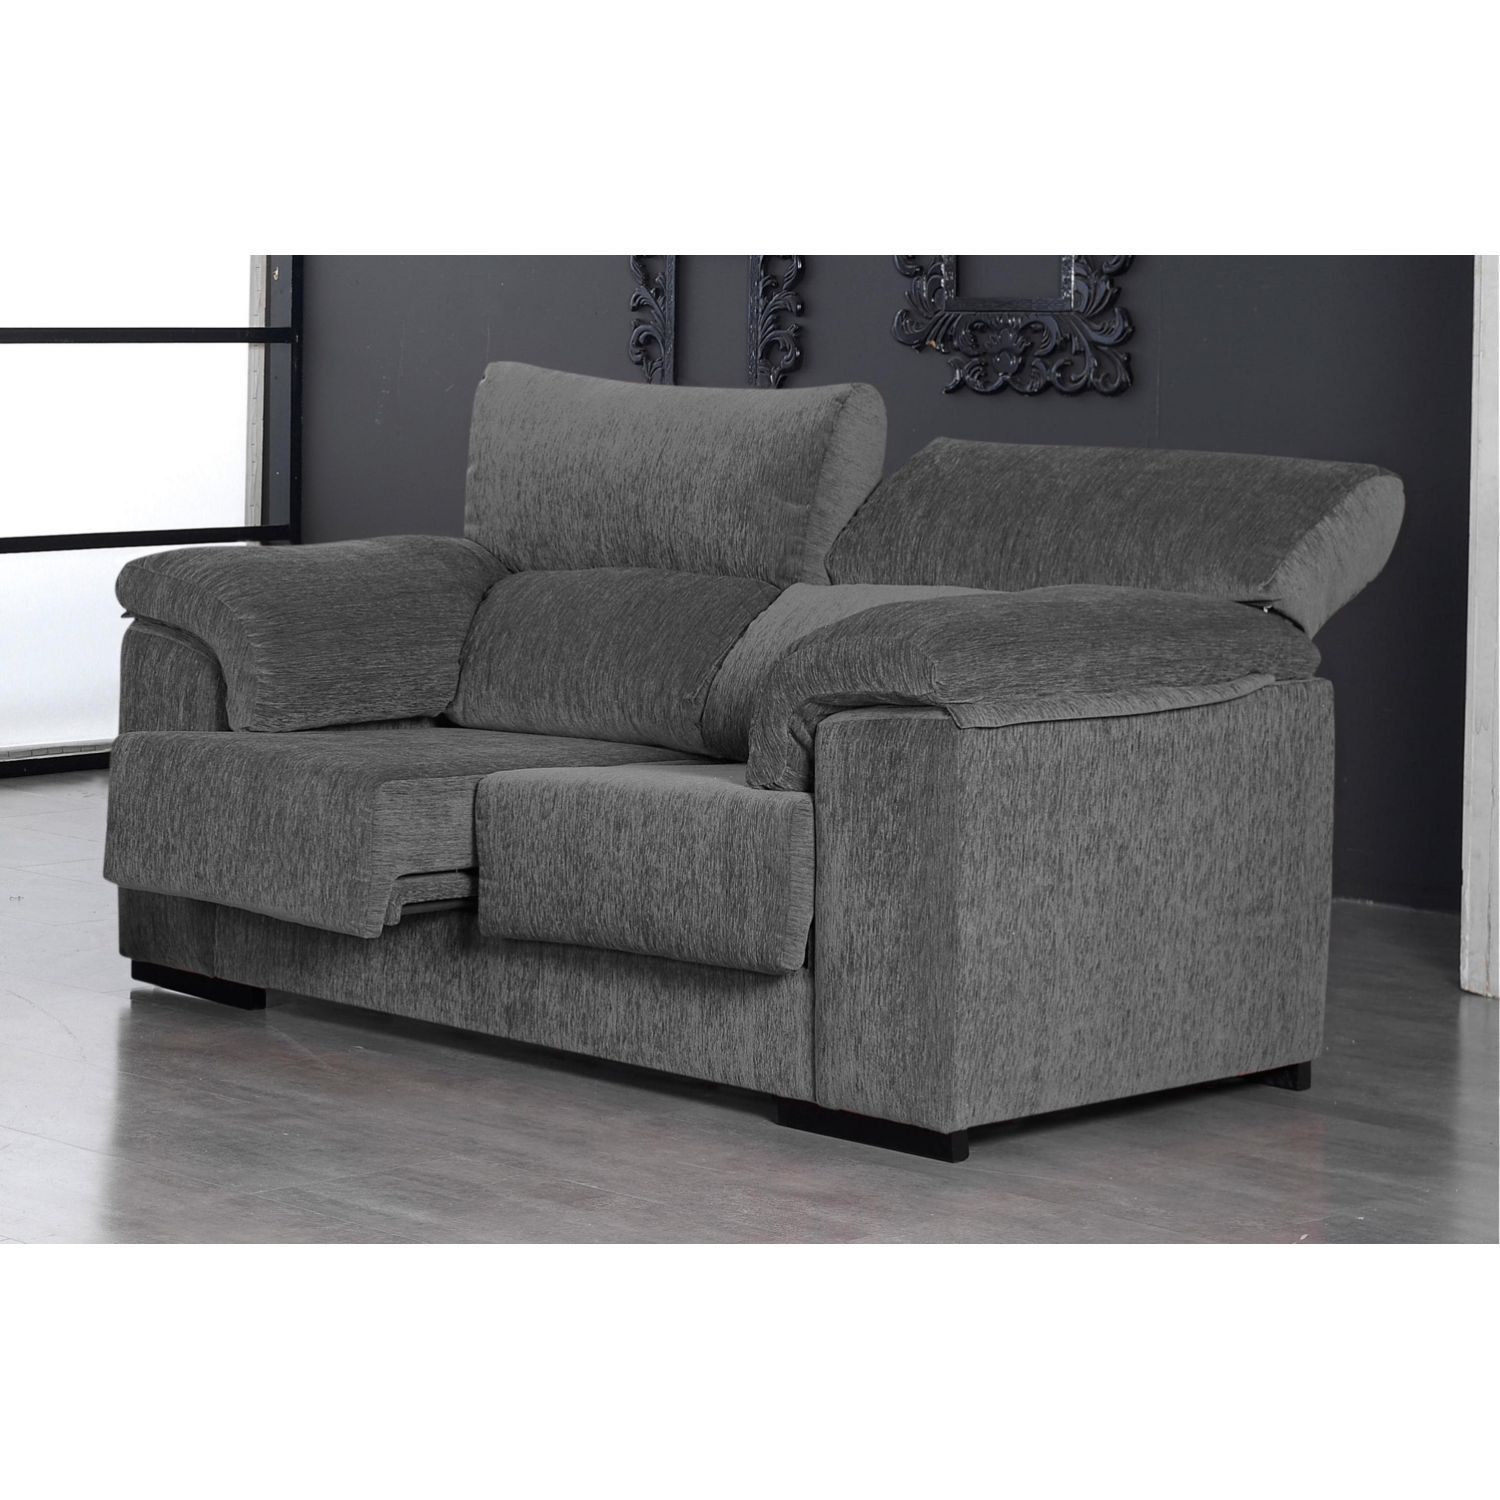 Sof barato marengo 2 plazas dise o actual 170 cm for Sofa 2 plazas barato